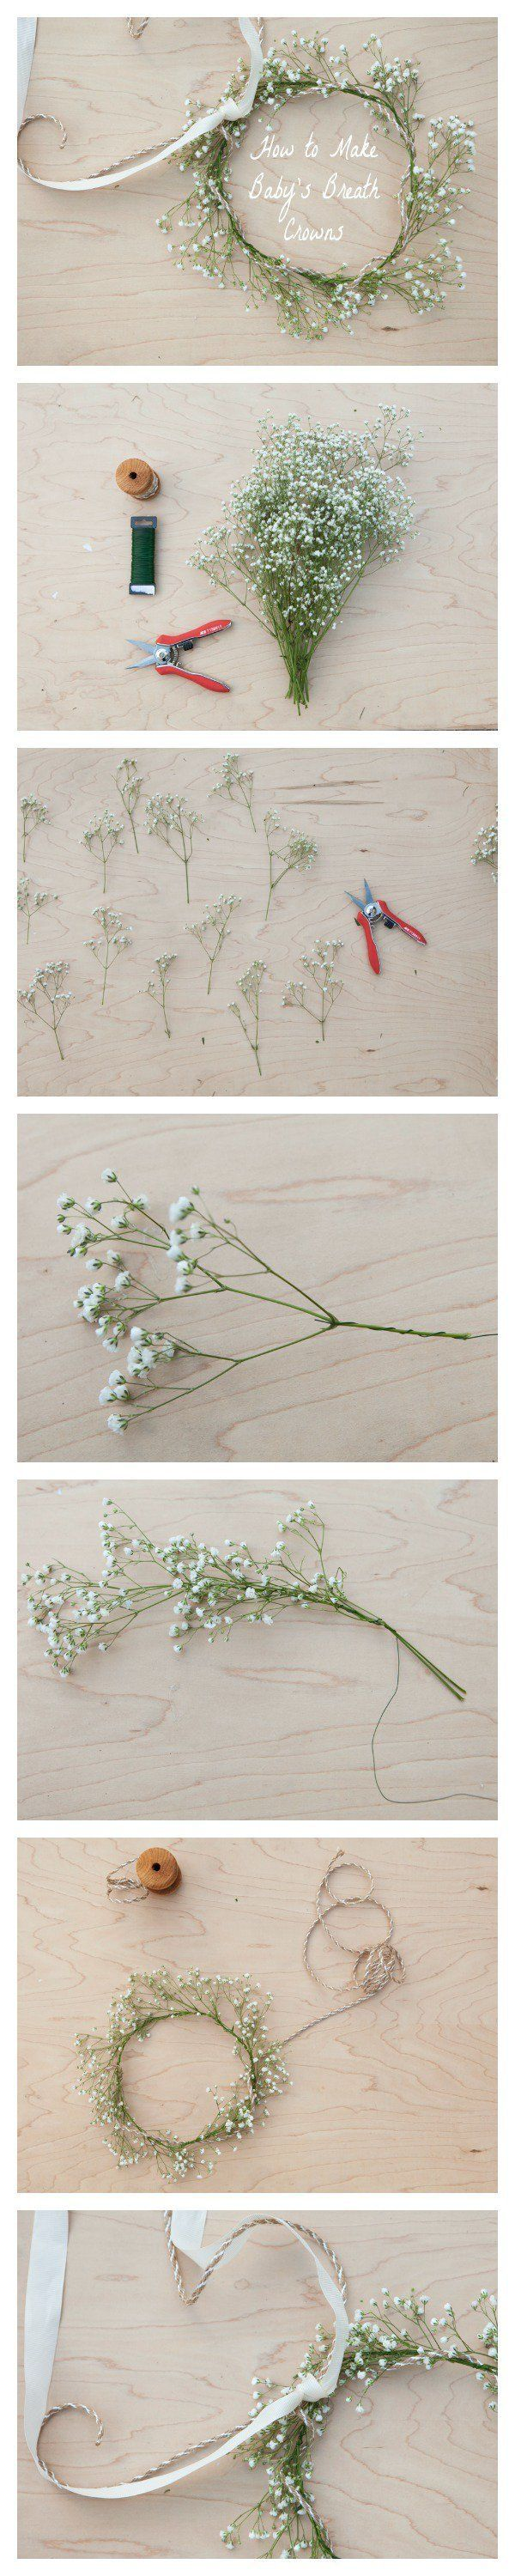 diy how to make a flower crown headband5